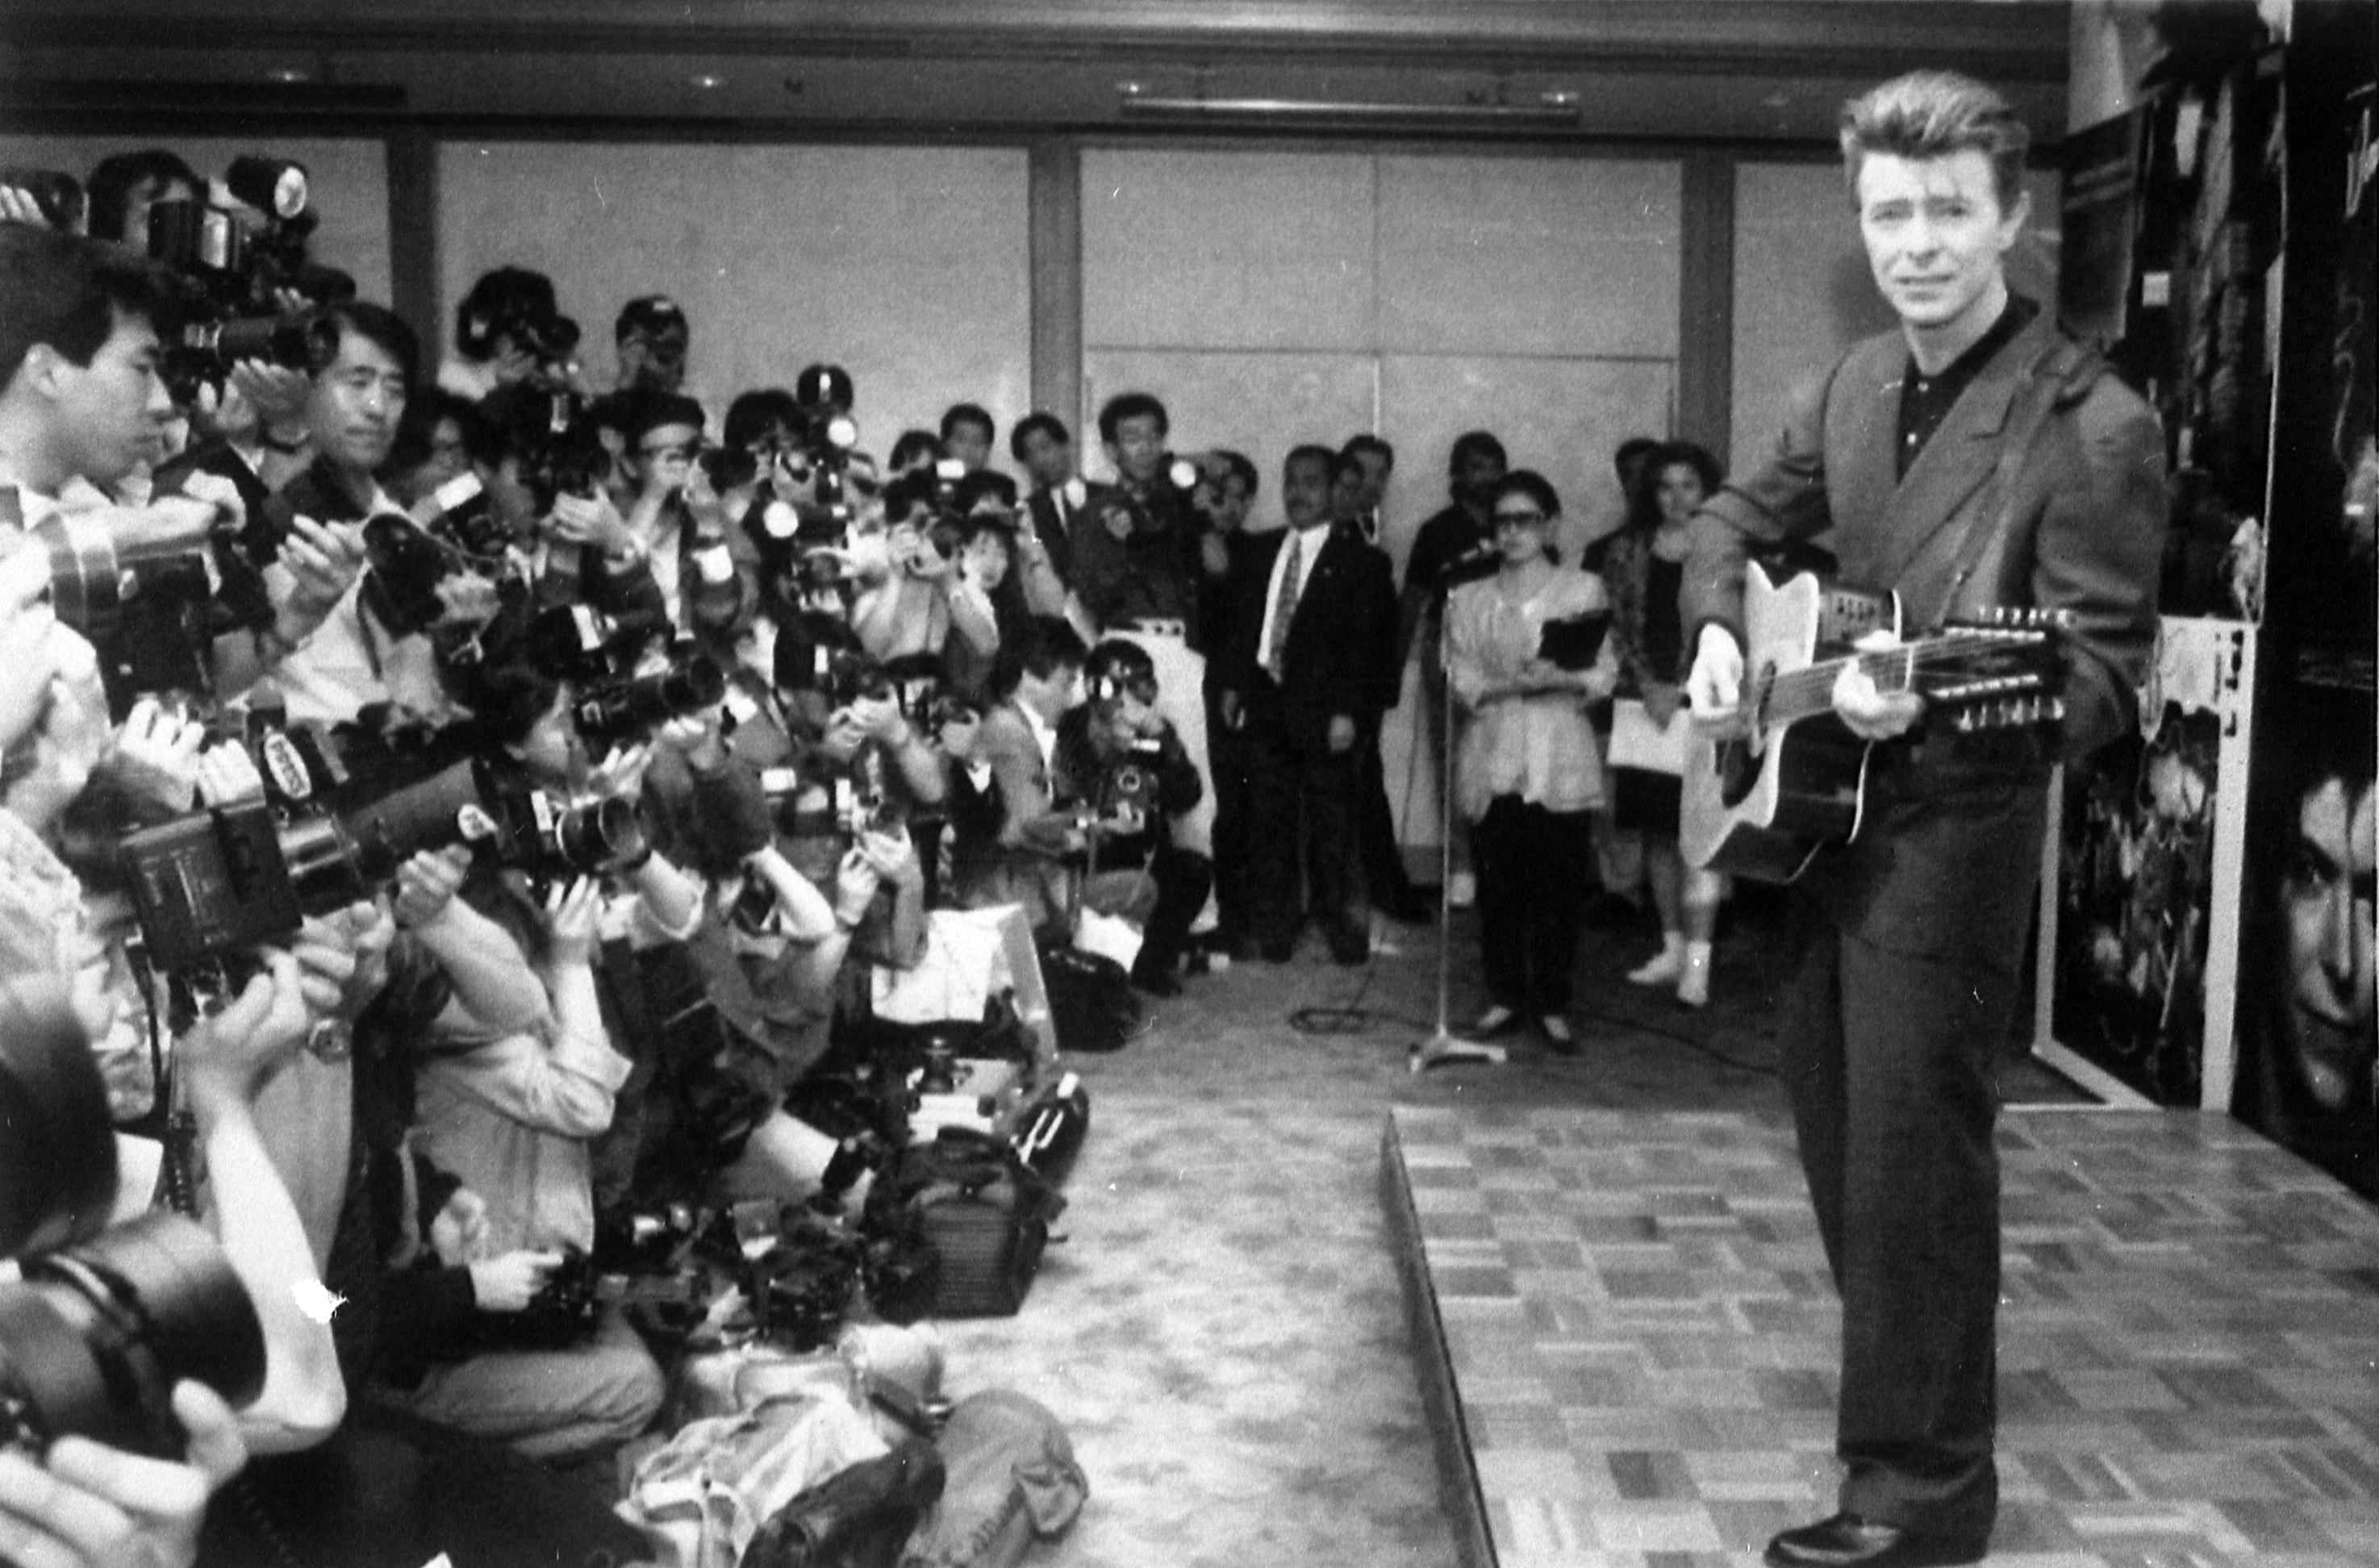 David Bowie plays an acoustic guitar while being photographed at a press conference in Tokyo on May 19, 1990.